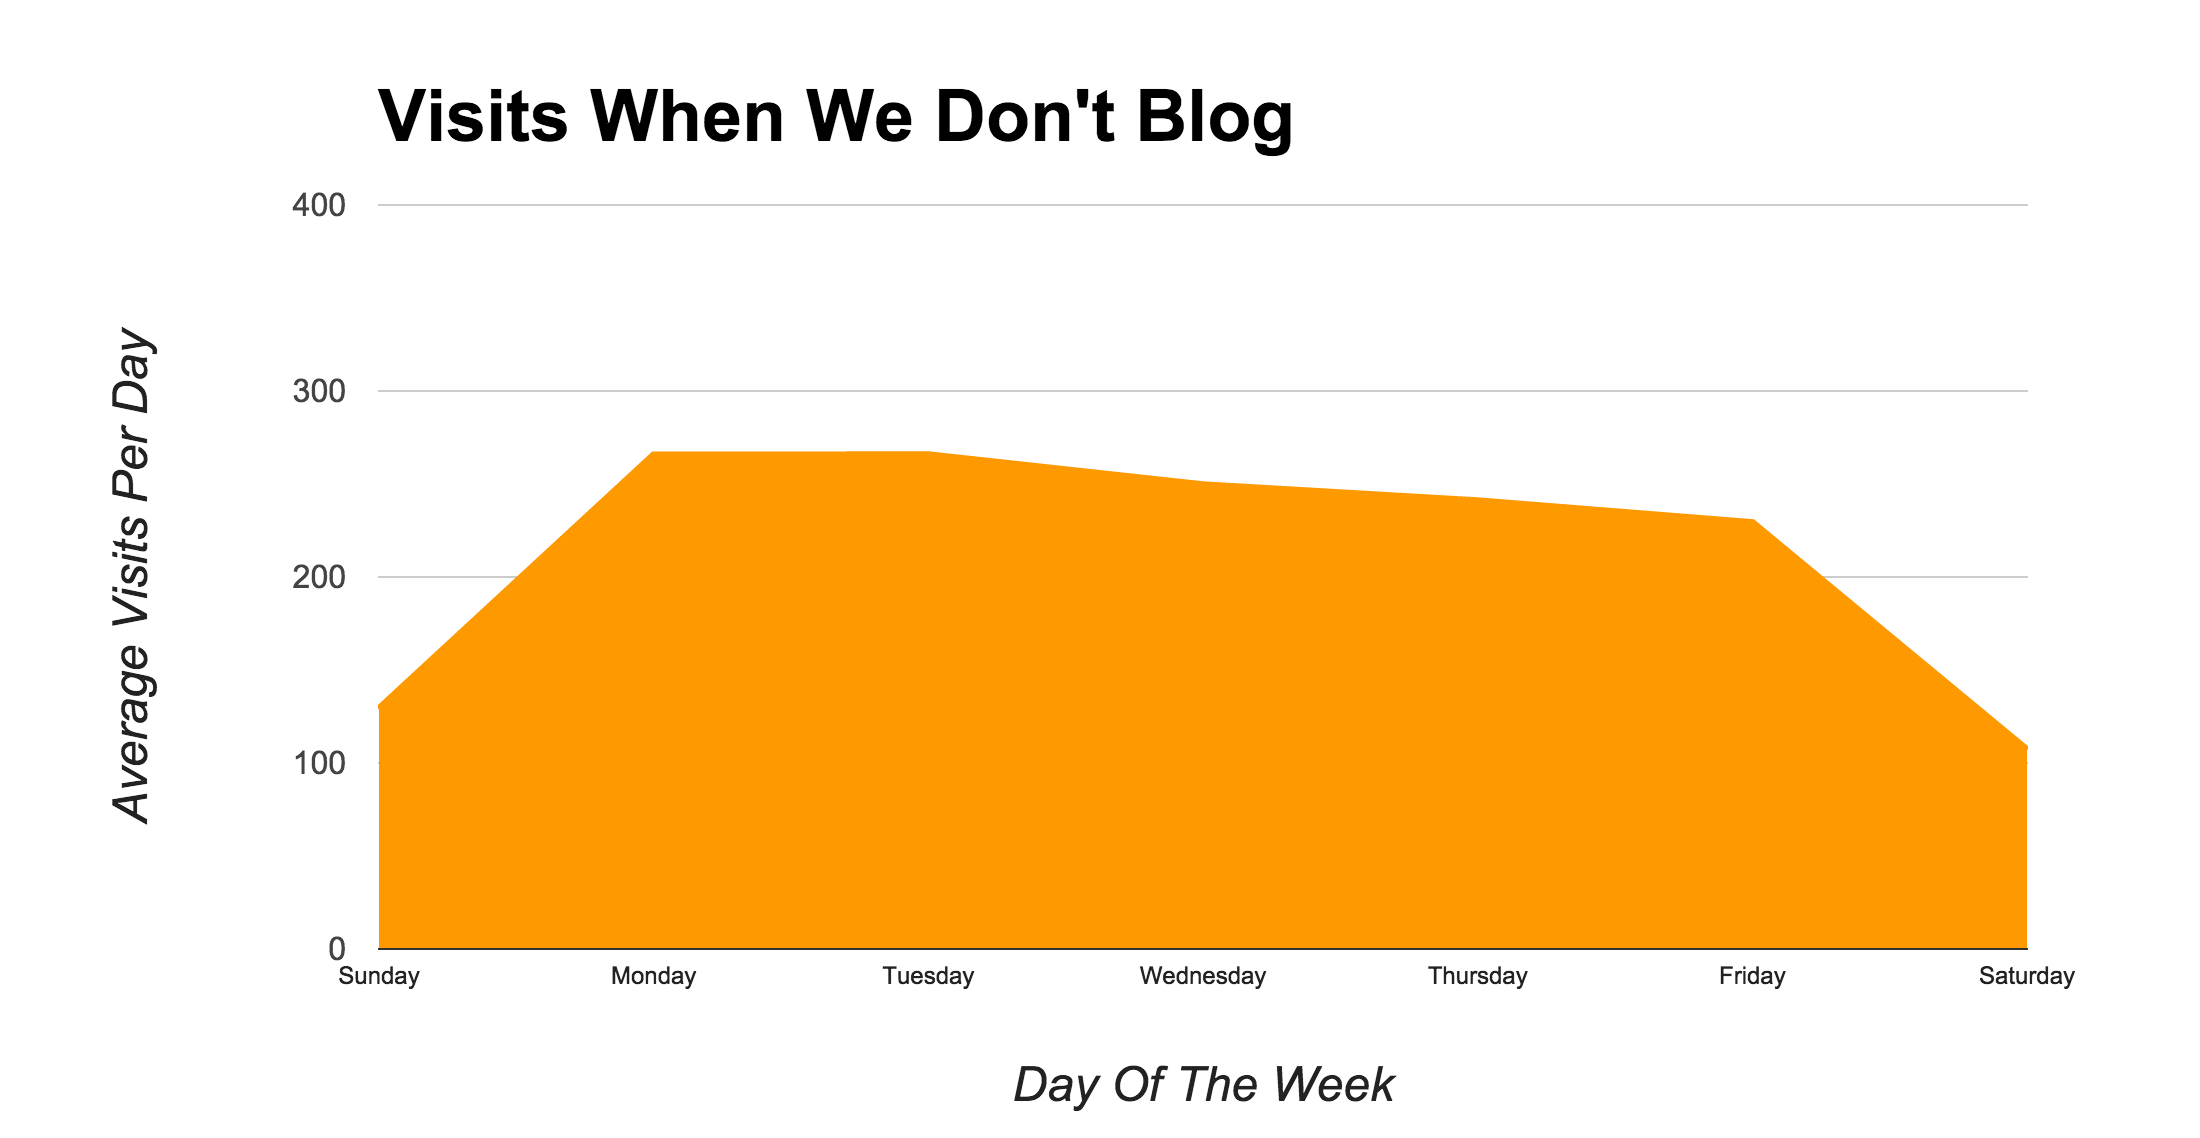 Visits Without Blogging